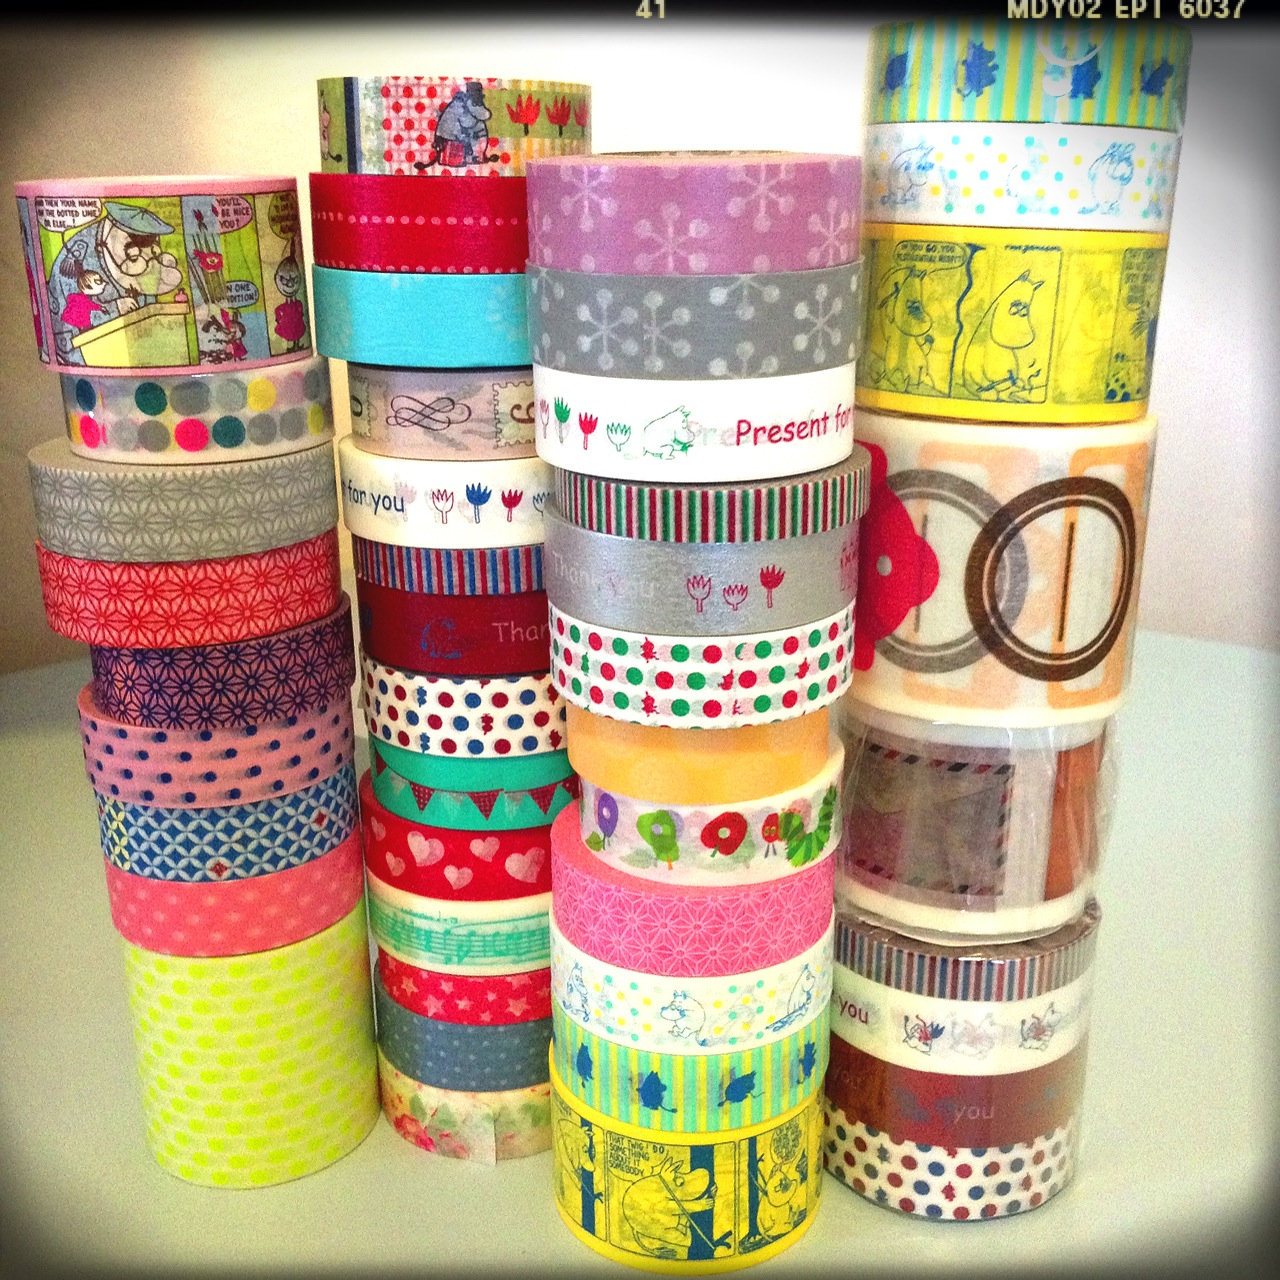 Washi Tale Tea Lightful Washi Tapes Catastrophic Findings